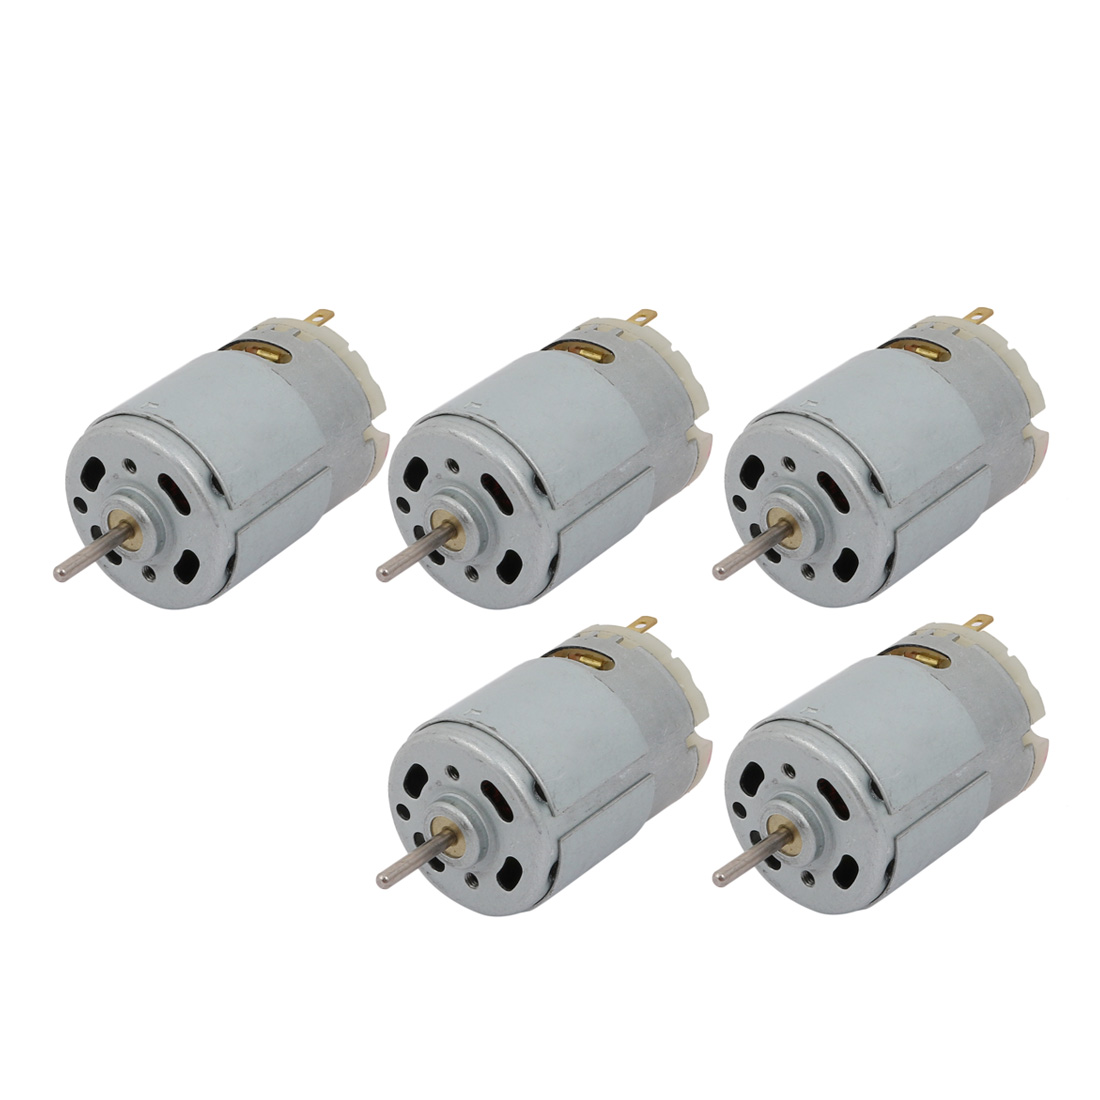 5Pcs DC24V 25000RPM Cylinder Magnetic Electric Micro DC Motor R380 for RC Plane